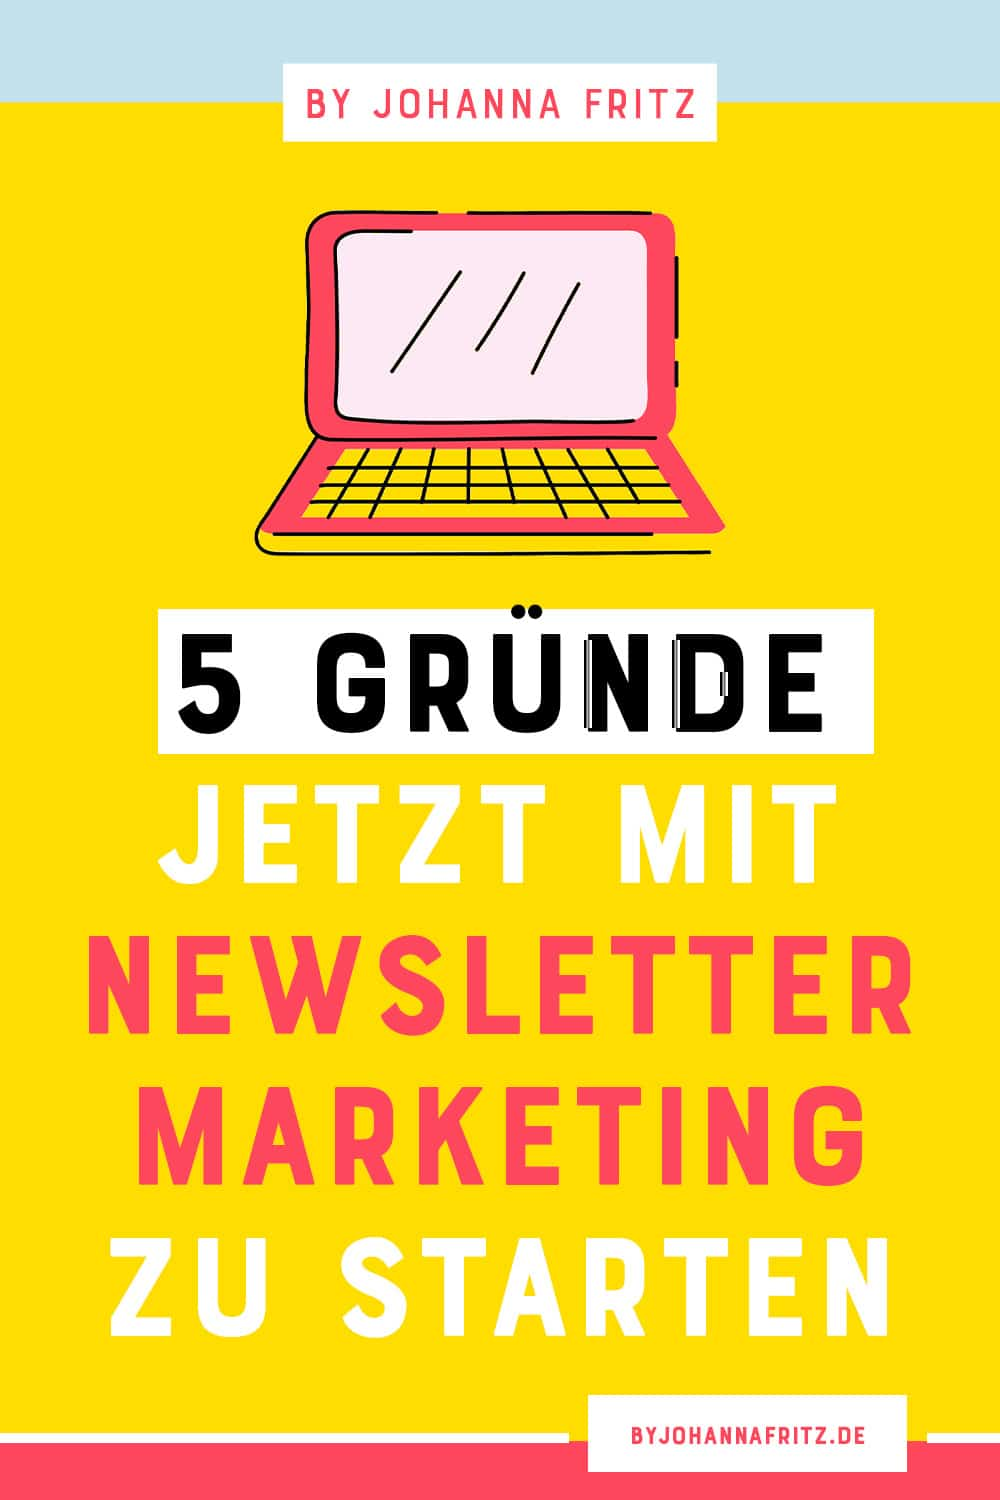 Warum mit Newsletter Marketing starten? By Johanna Fritz Online Business Coach